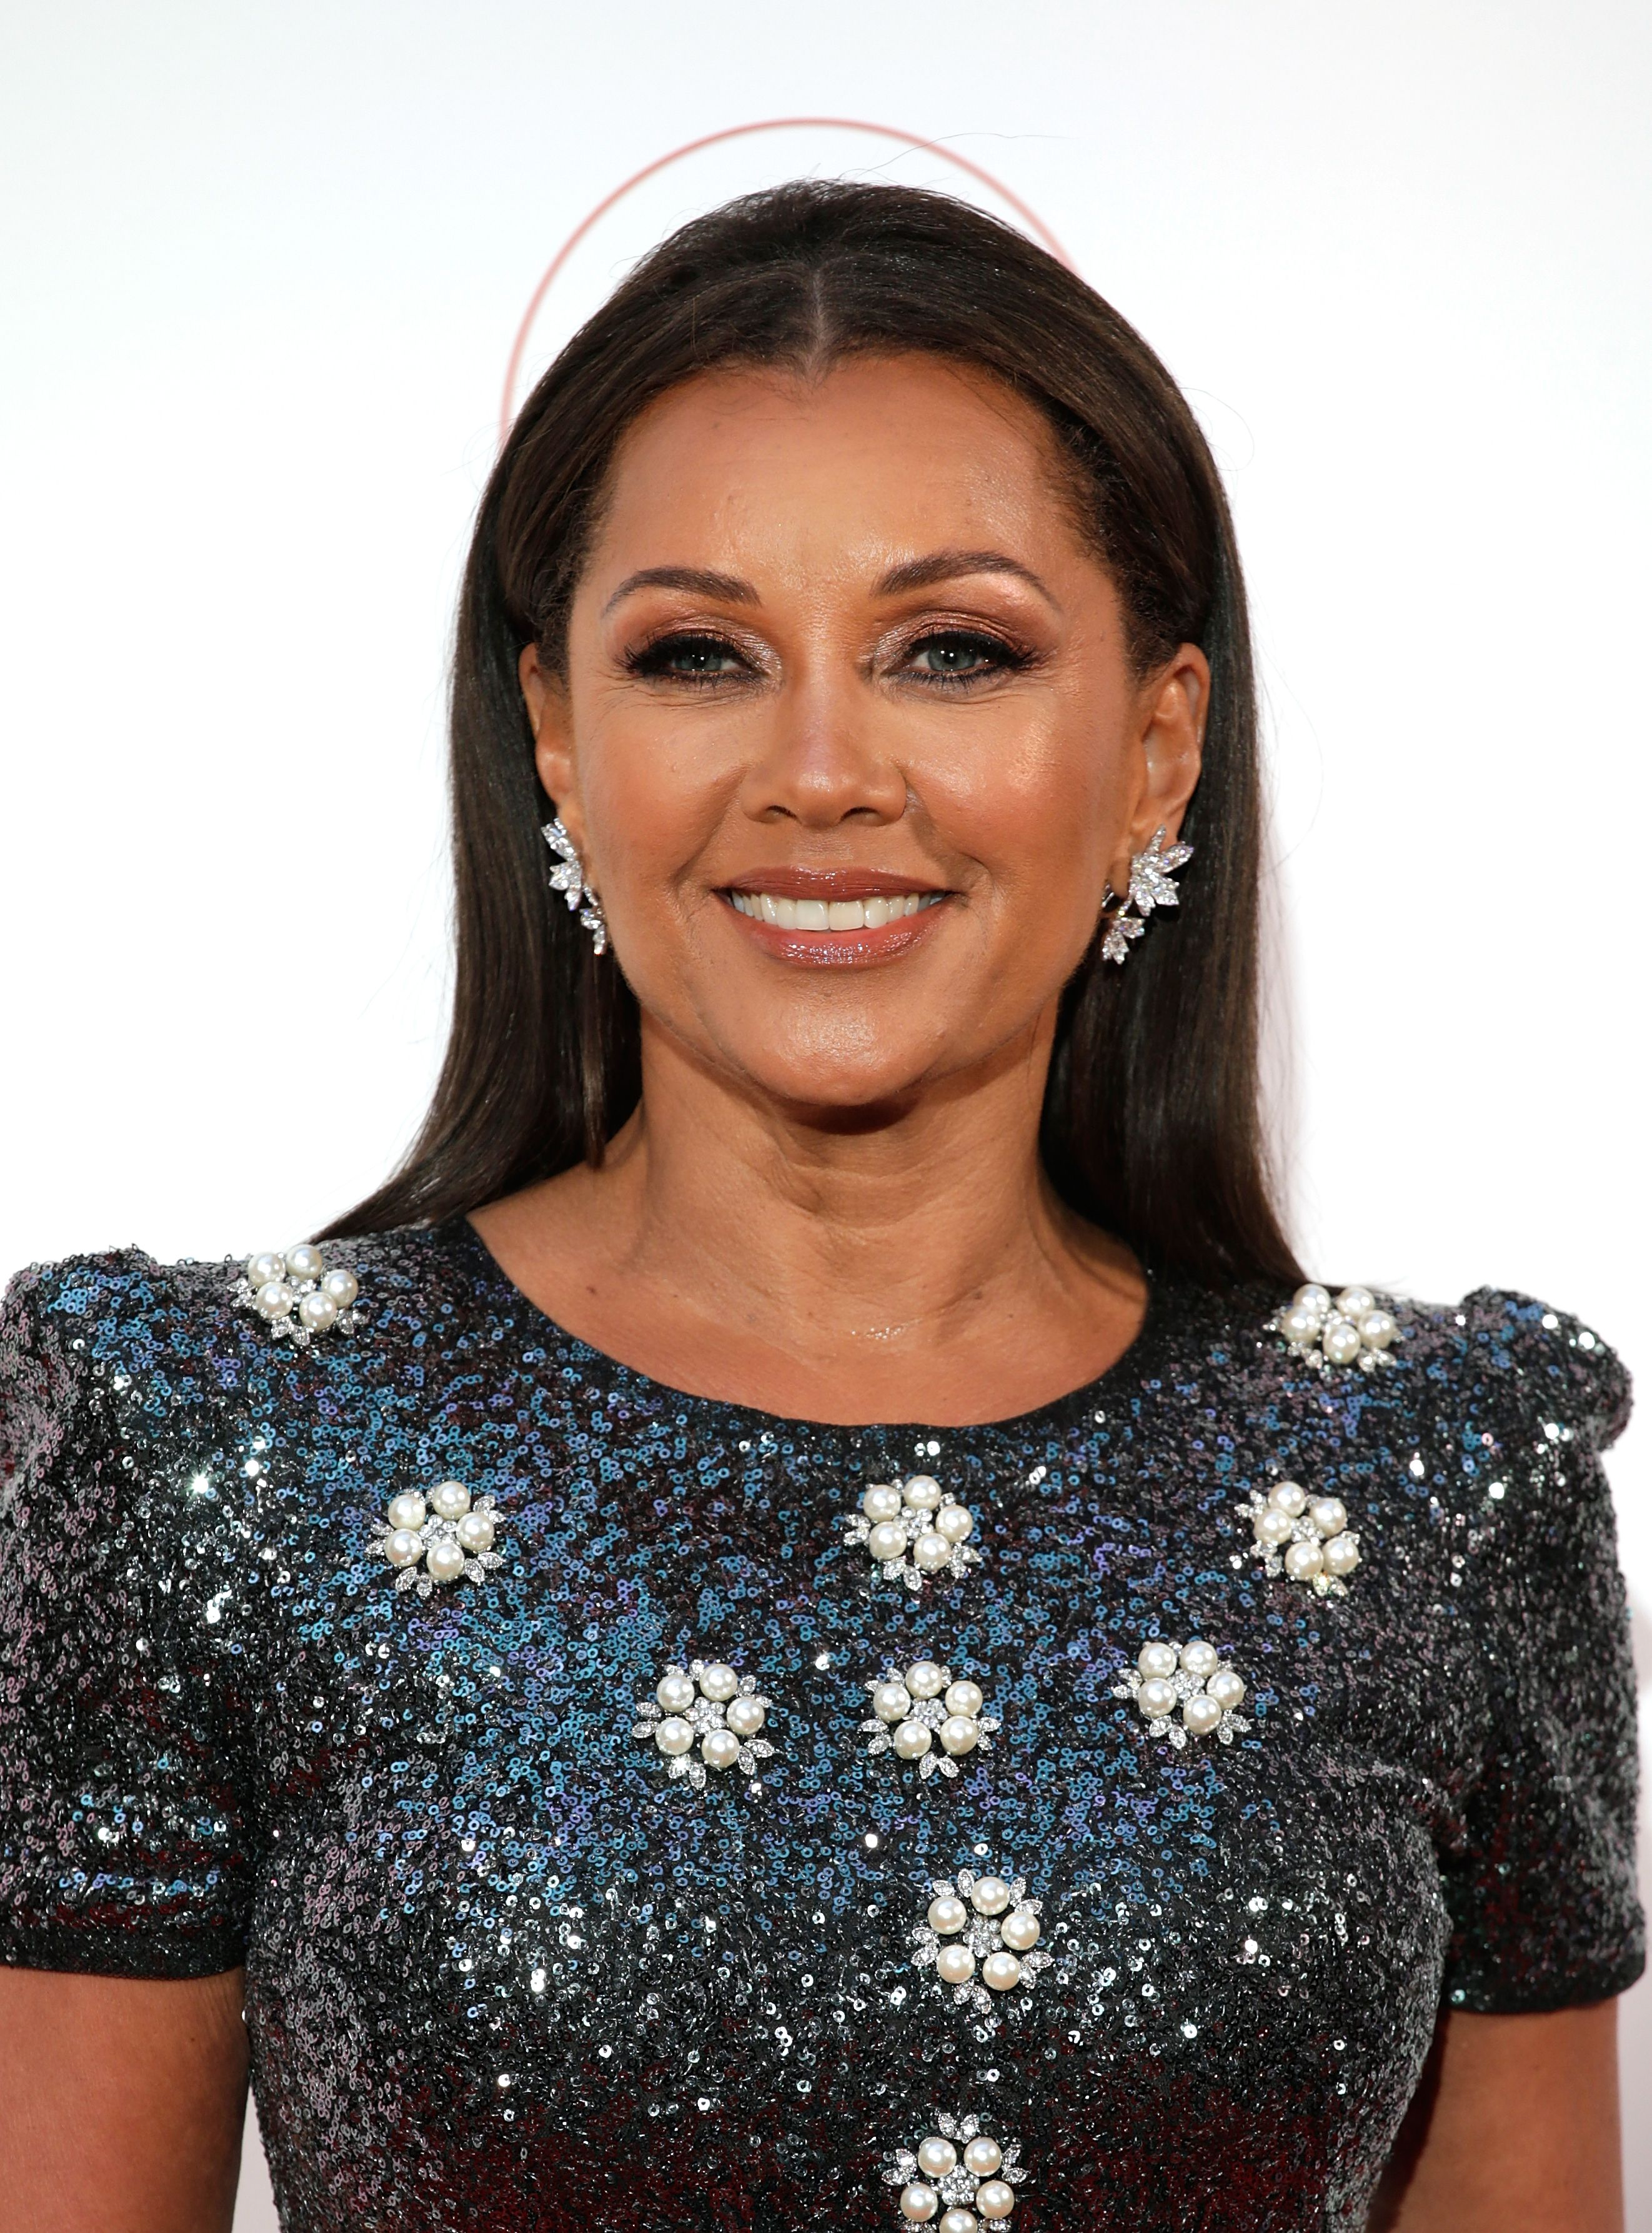 Actress Vanessa Williams at The Nelson Mandela Global Gift Gala on April 24, 2018 in London.   Photo: Getty Images